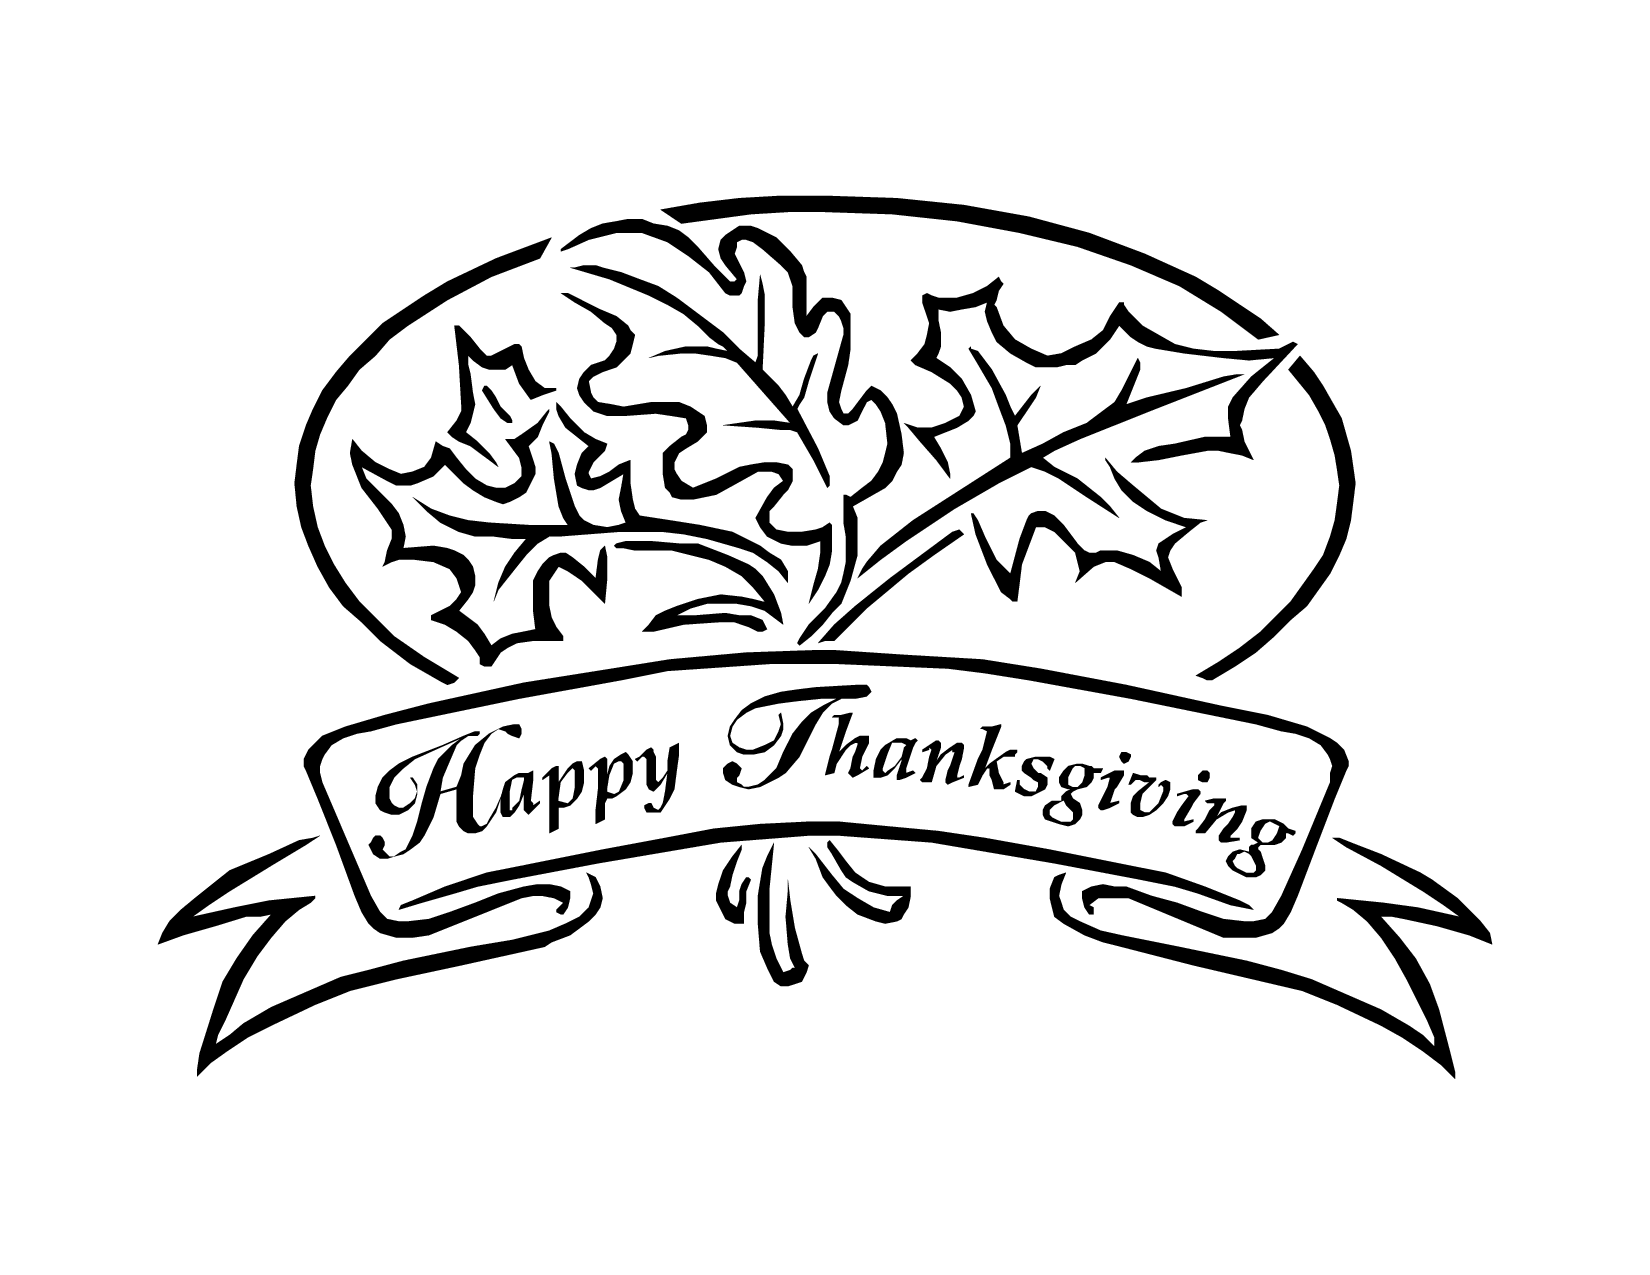 Thanksgiving clipart coloring pages ~ Disney Thanksgiving Images - Cliparts.co